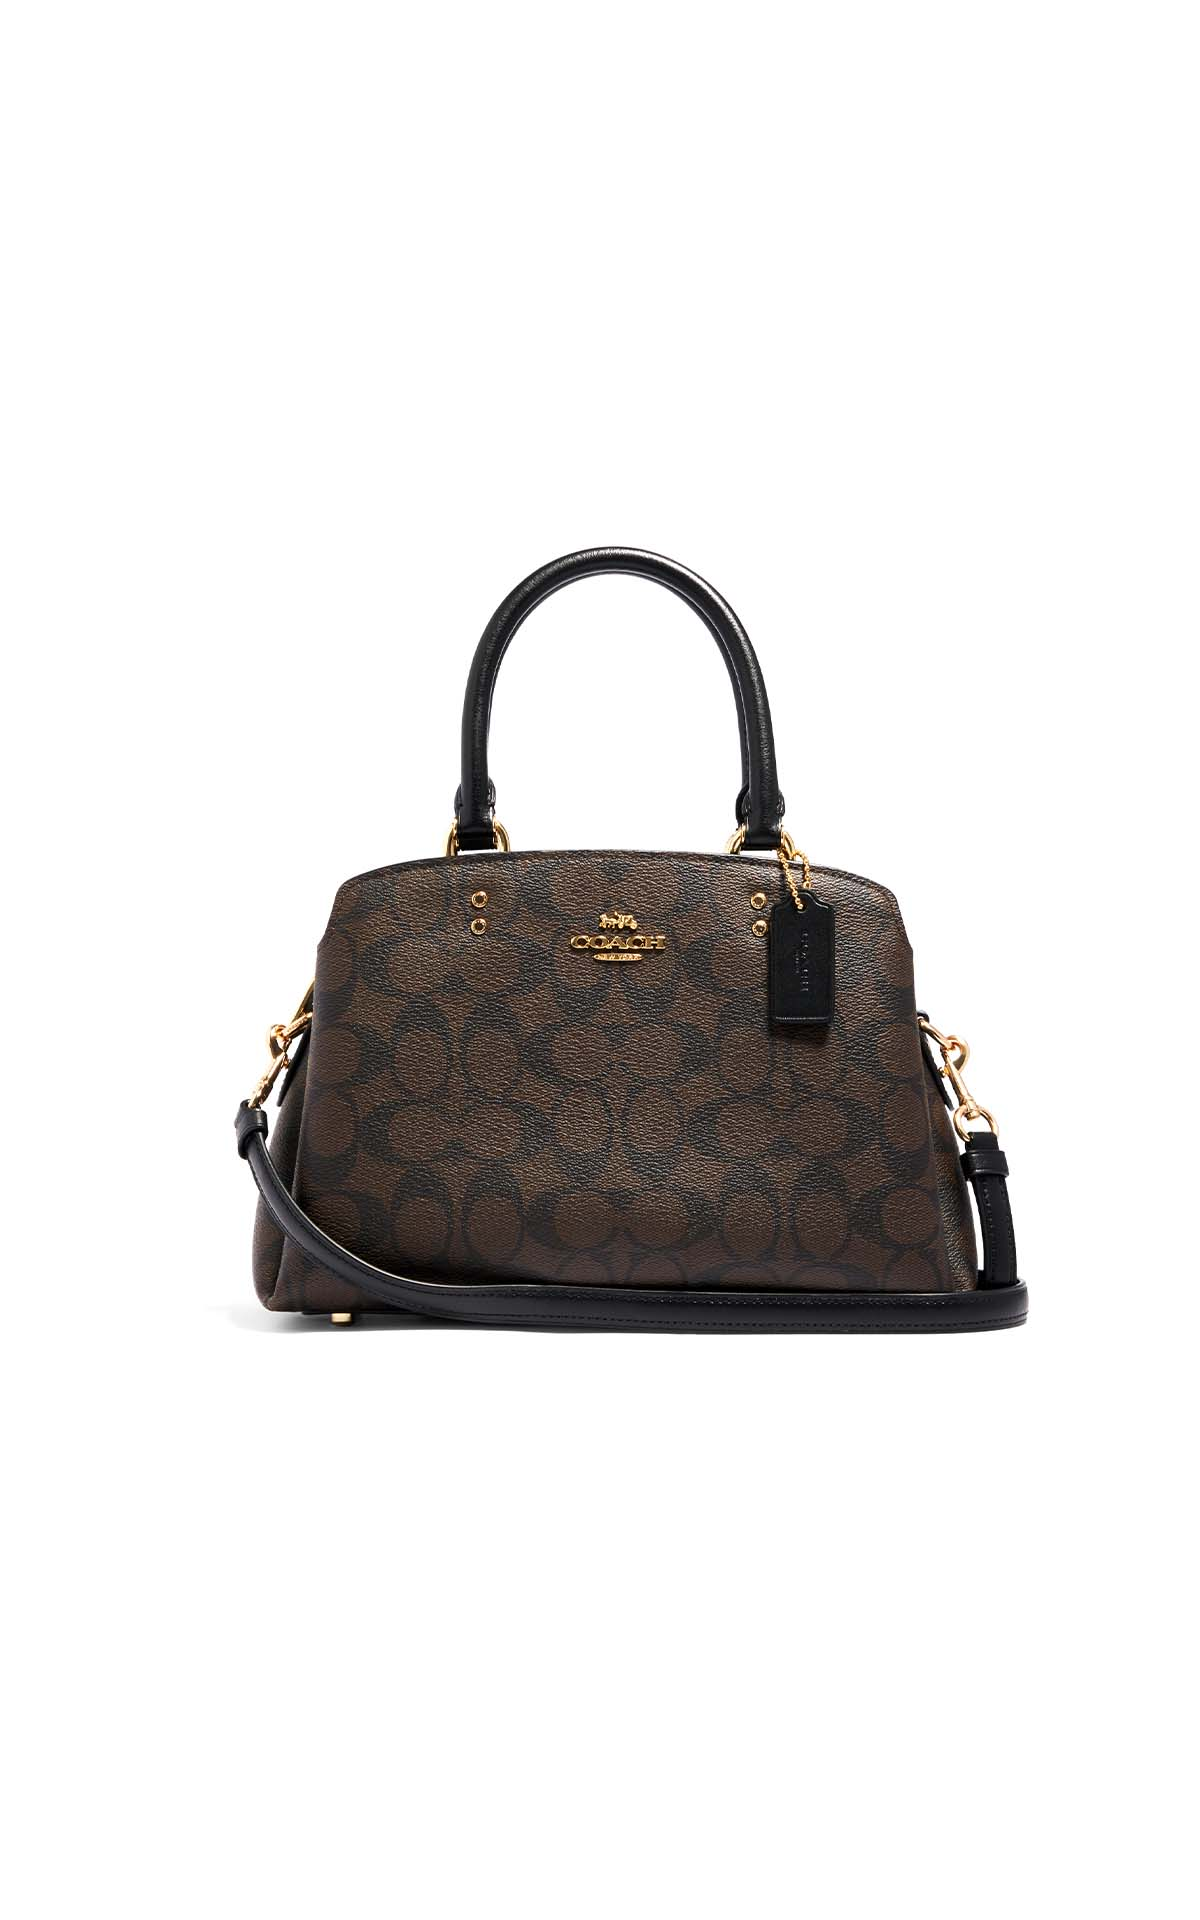 Coach Signature mini Lillie carryall in brown/black at The Bicester Village Shopping Collection